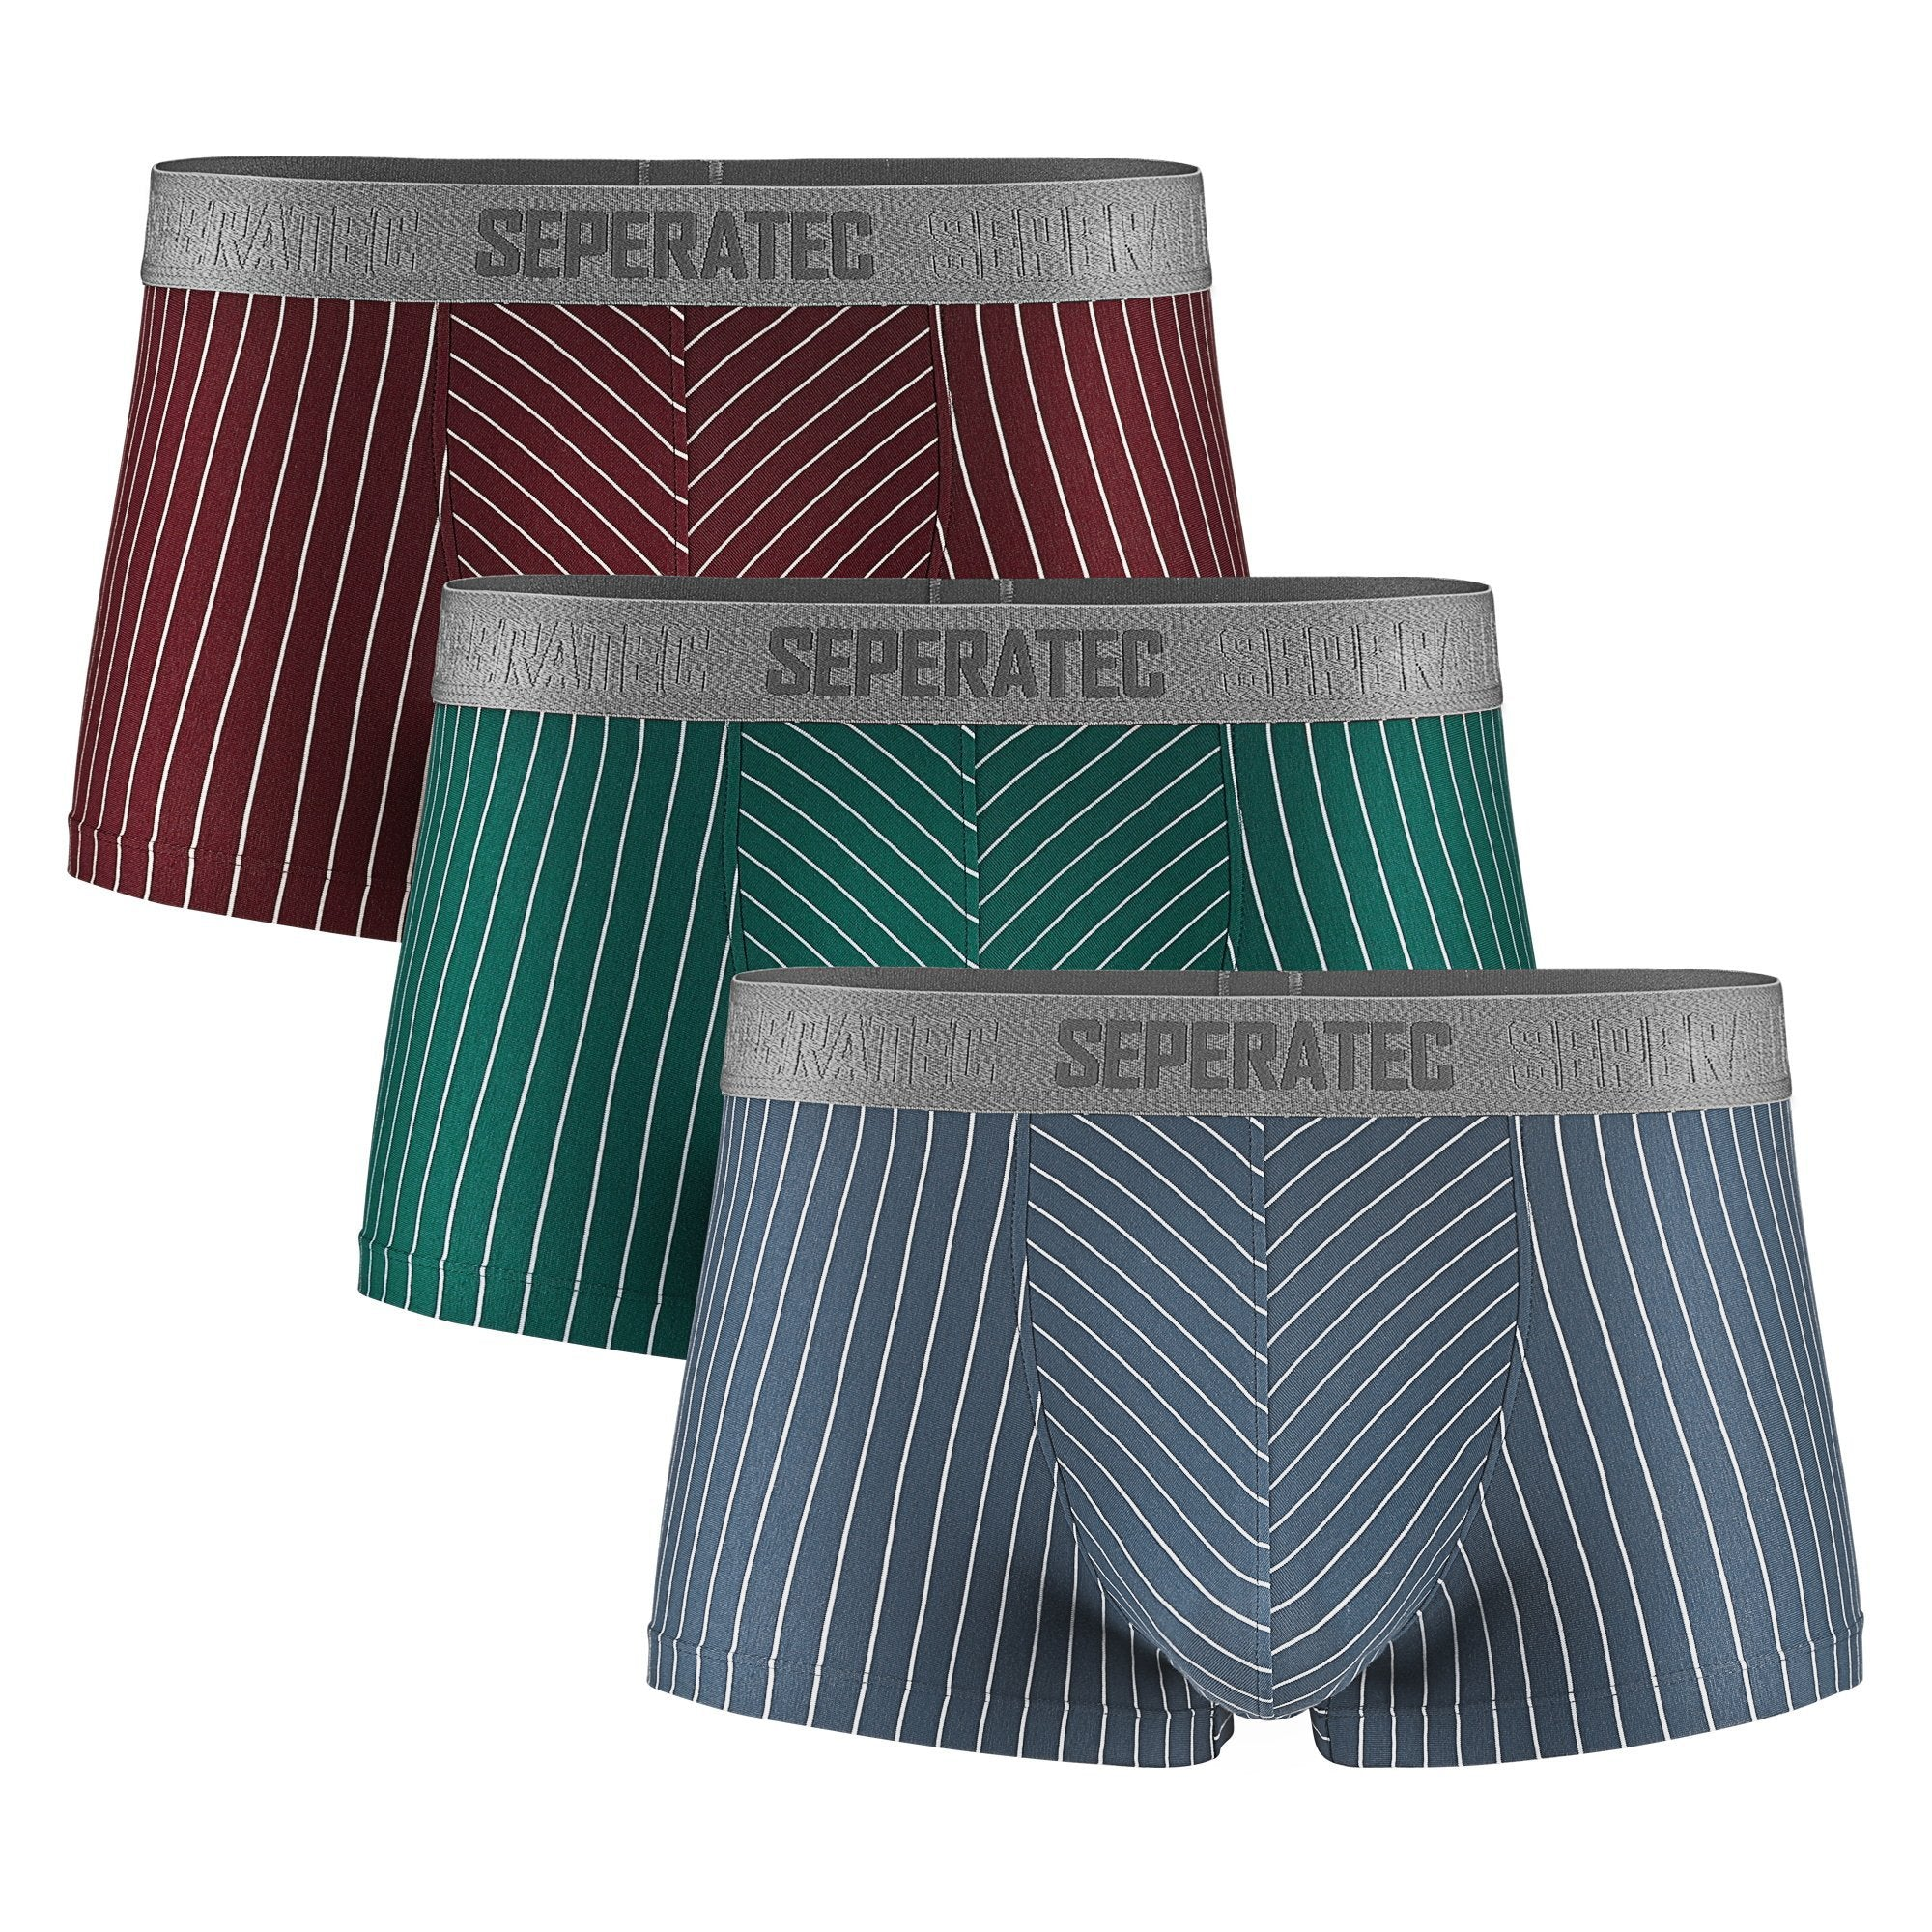 Separatec Dual Pouch Stylish Striped Pattern Smooth Cotton Trunks 3Pack Black Gray Bluestripe